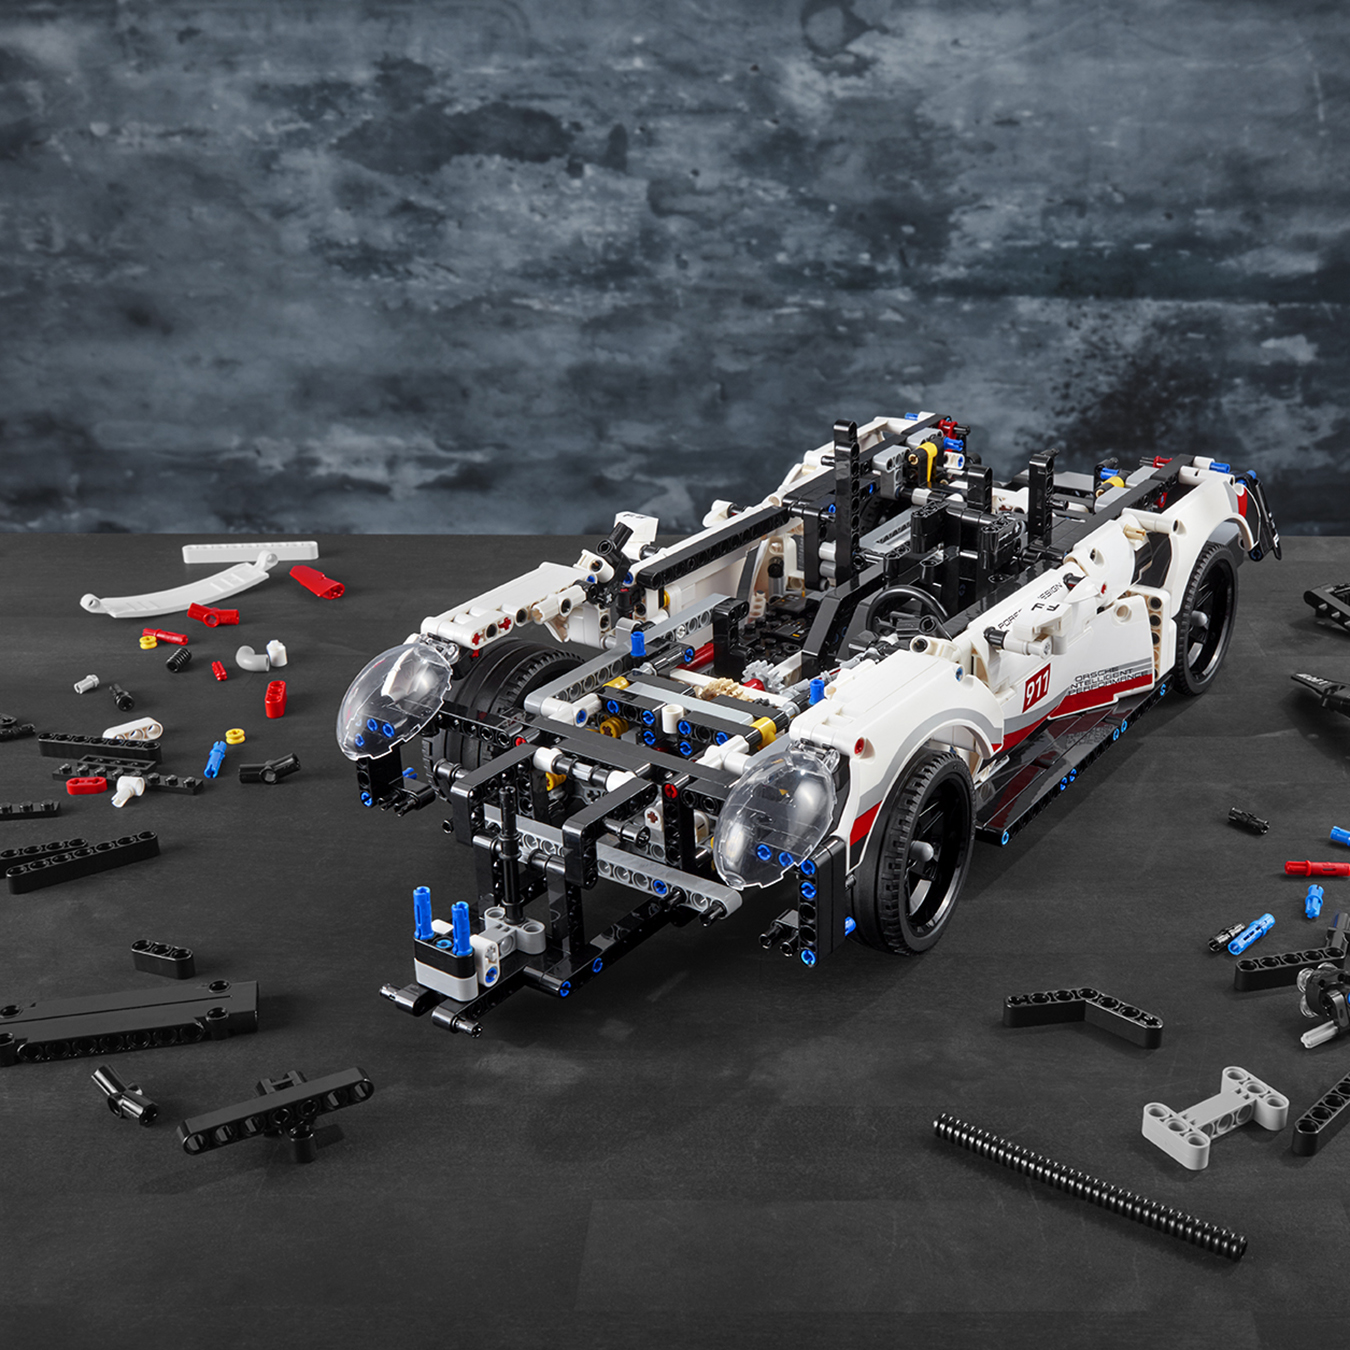 42096 lego technic porsche 911 rsr 1580 pieces age 10 new release for 2019 5702016369878 ebay. Black Bedroom Furniture Sets. Home Design Ideas